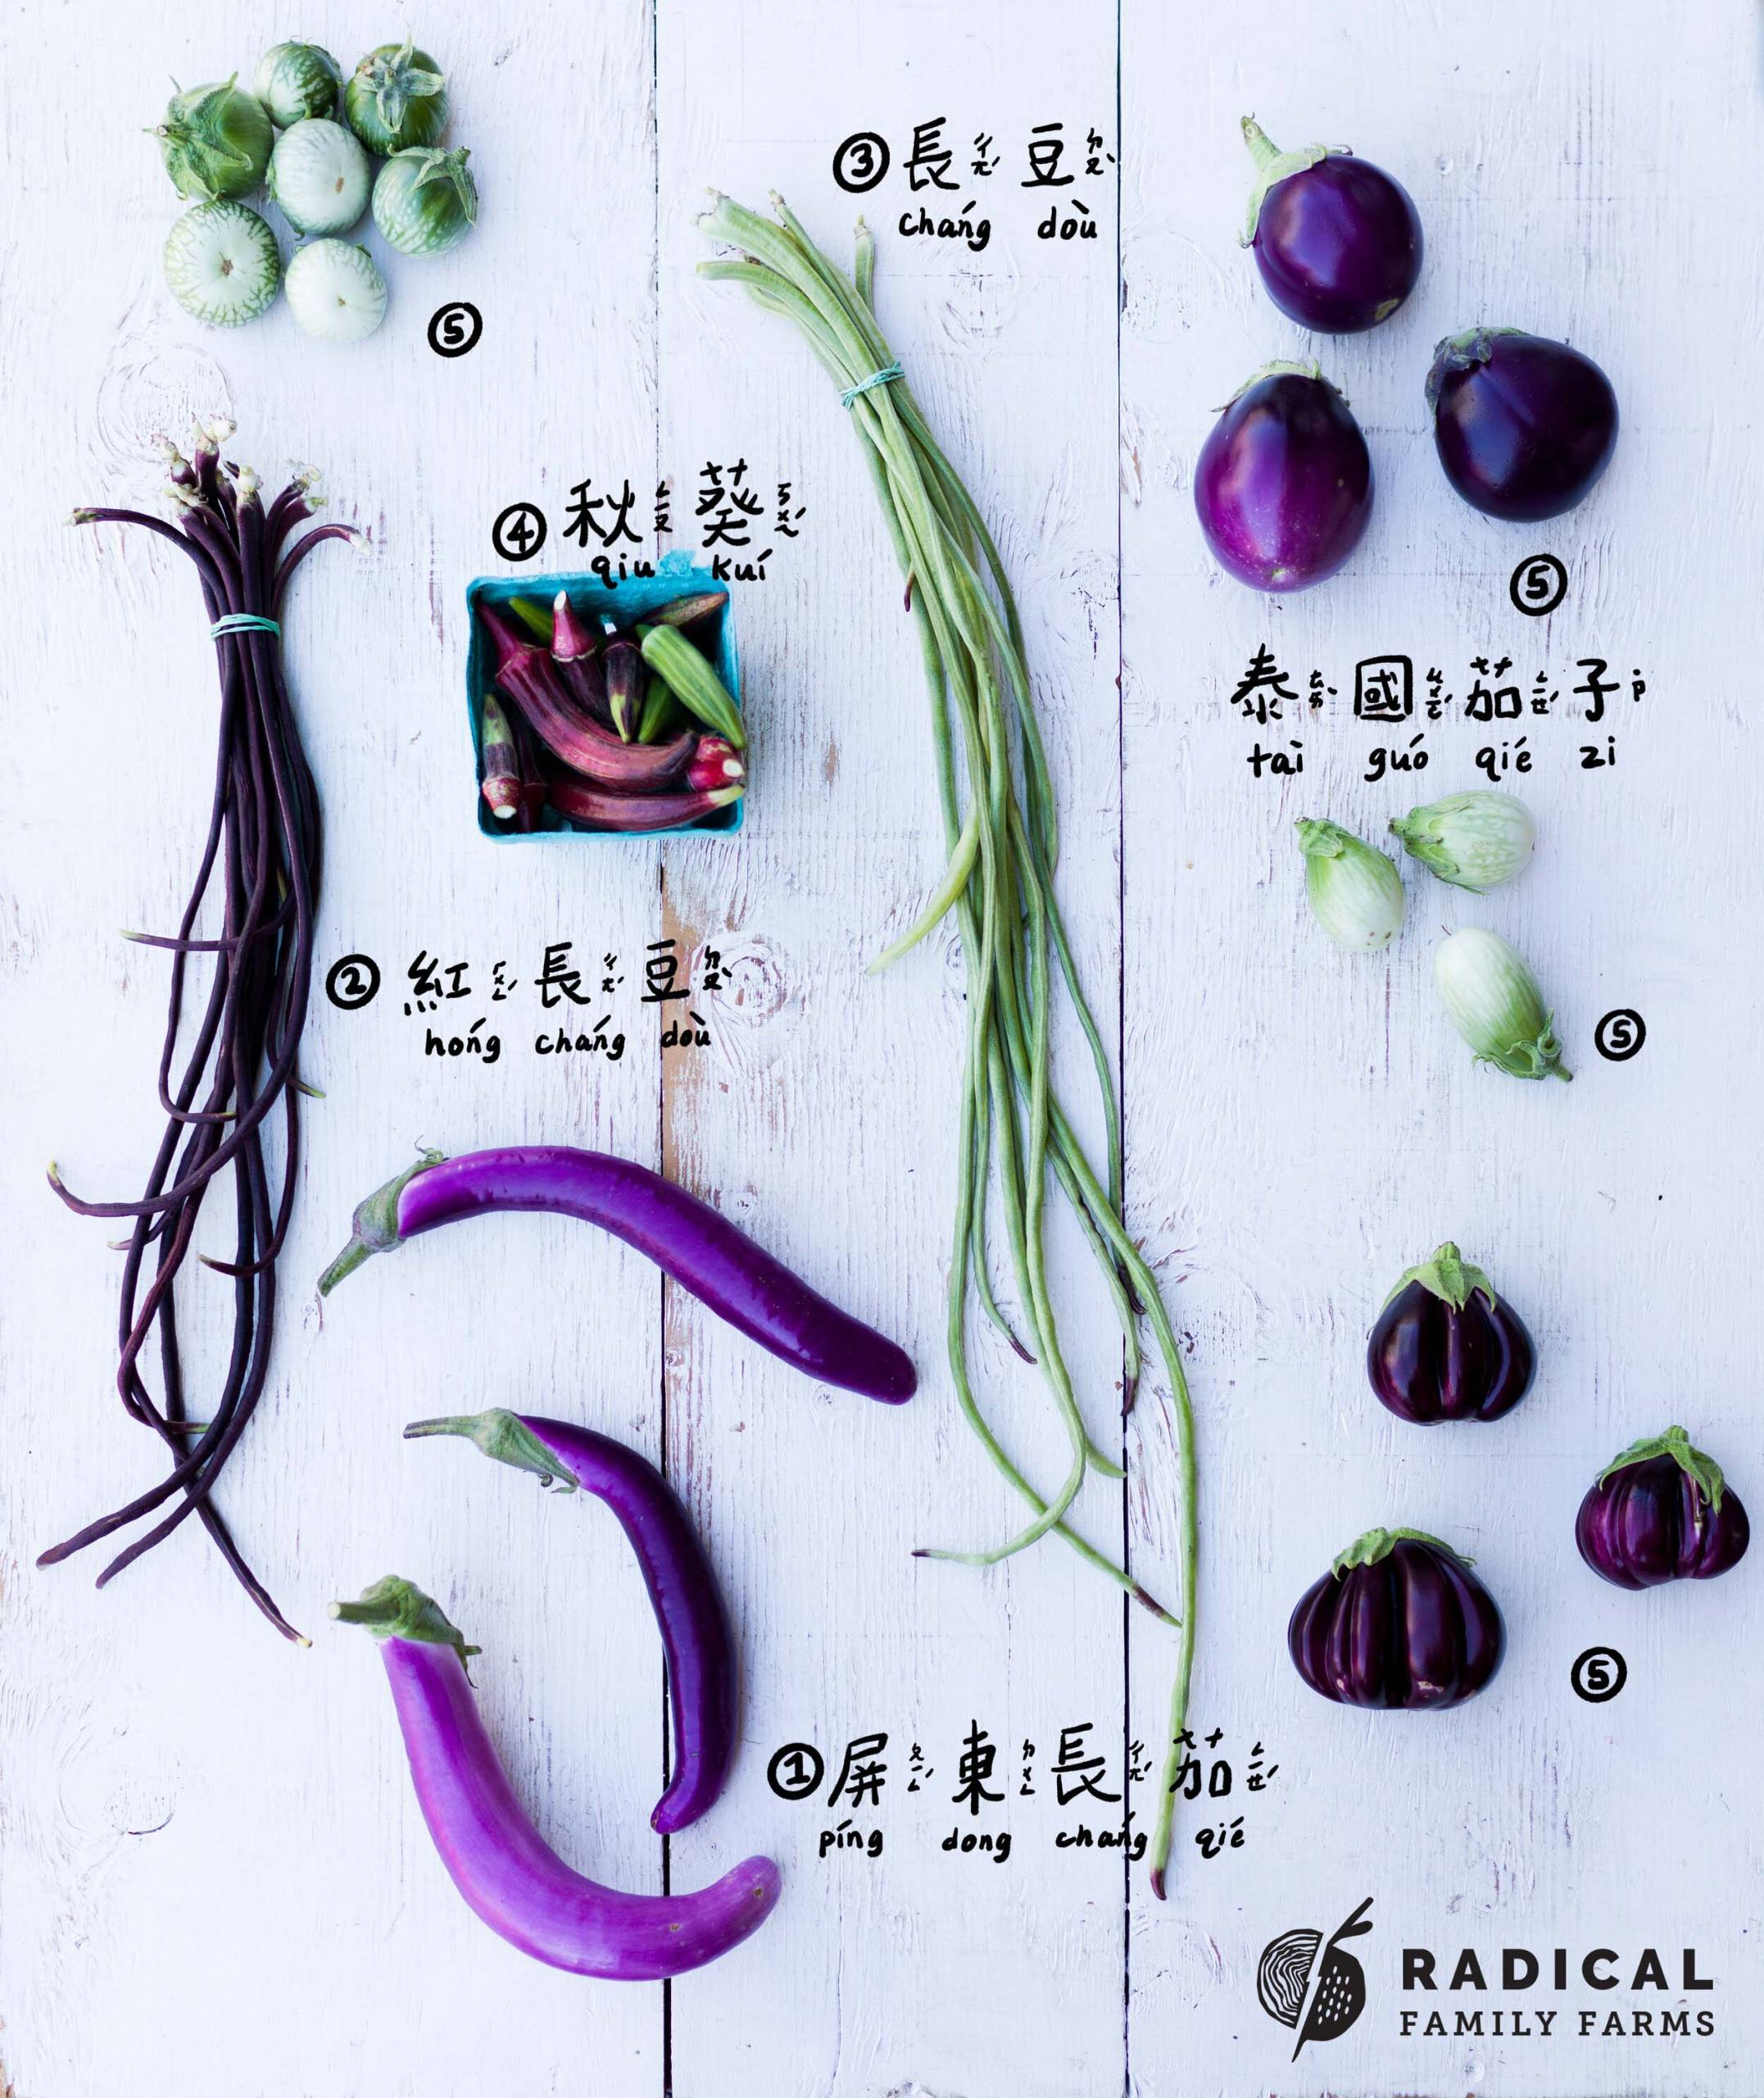 The vegetables from a CSA produce box, including long beans, okra and several varieties of eggplant, arranged artfully on a white wooden board.